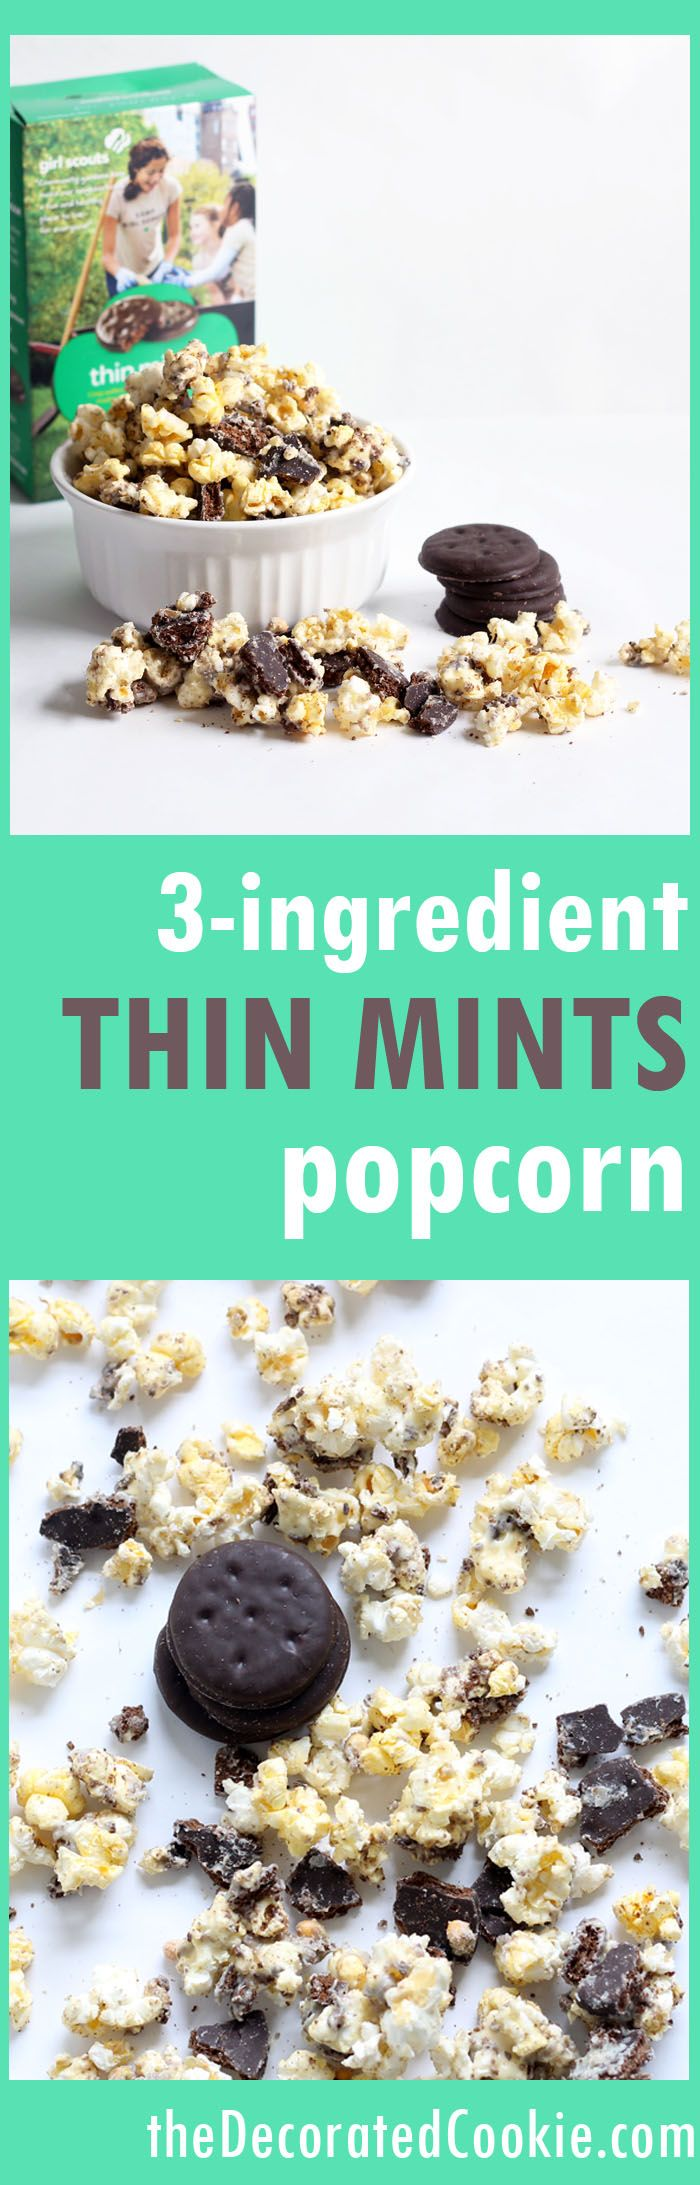 3 ingredient THIN MINTS popcorn -- Girl Scout cookies popcorn ~ The Decorated Cookie